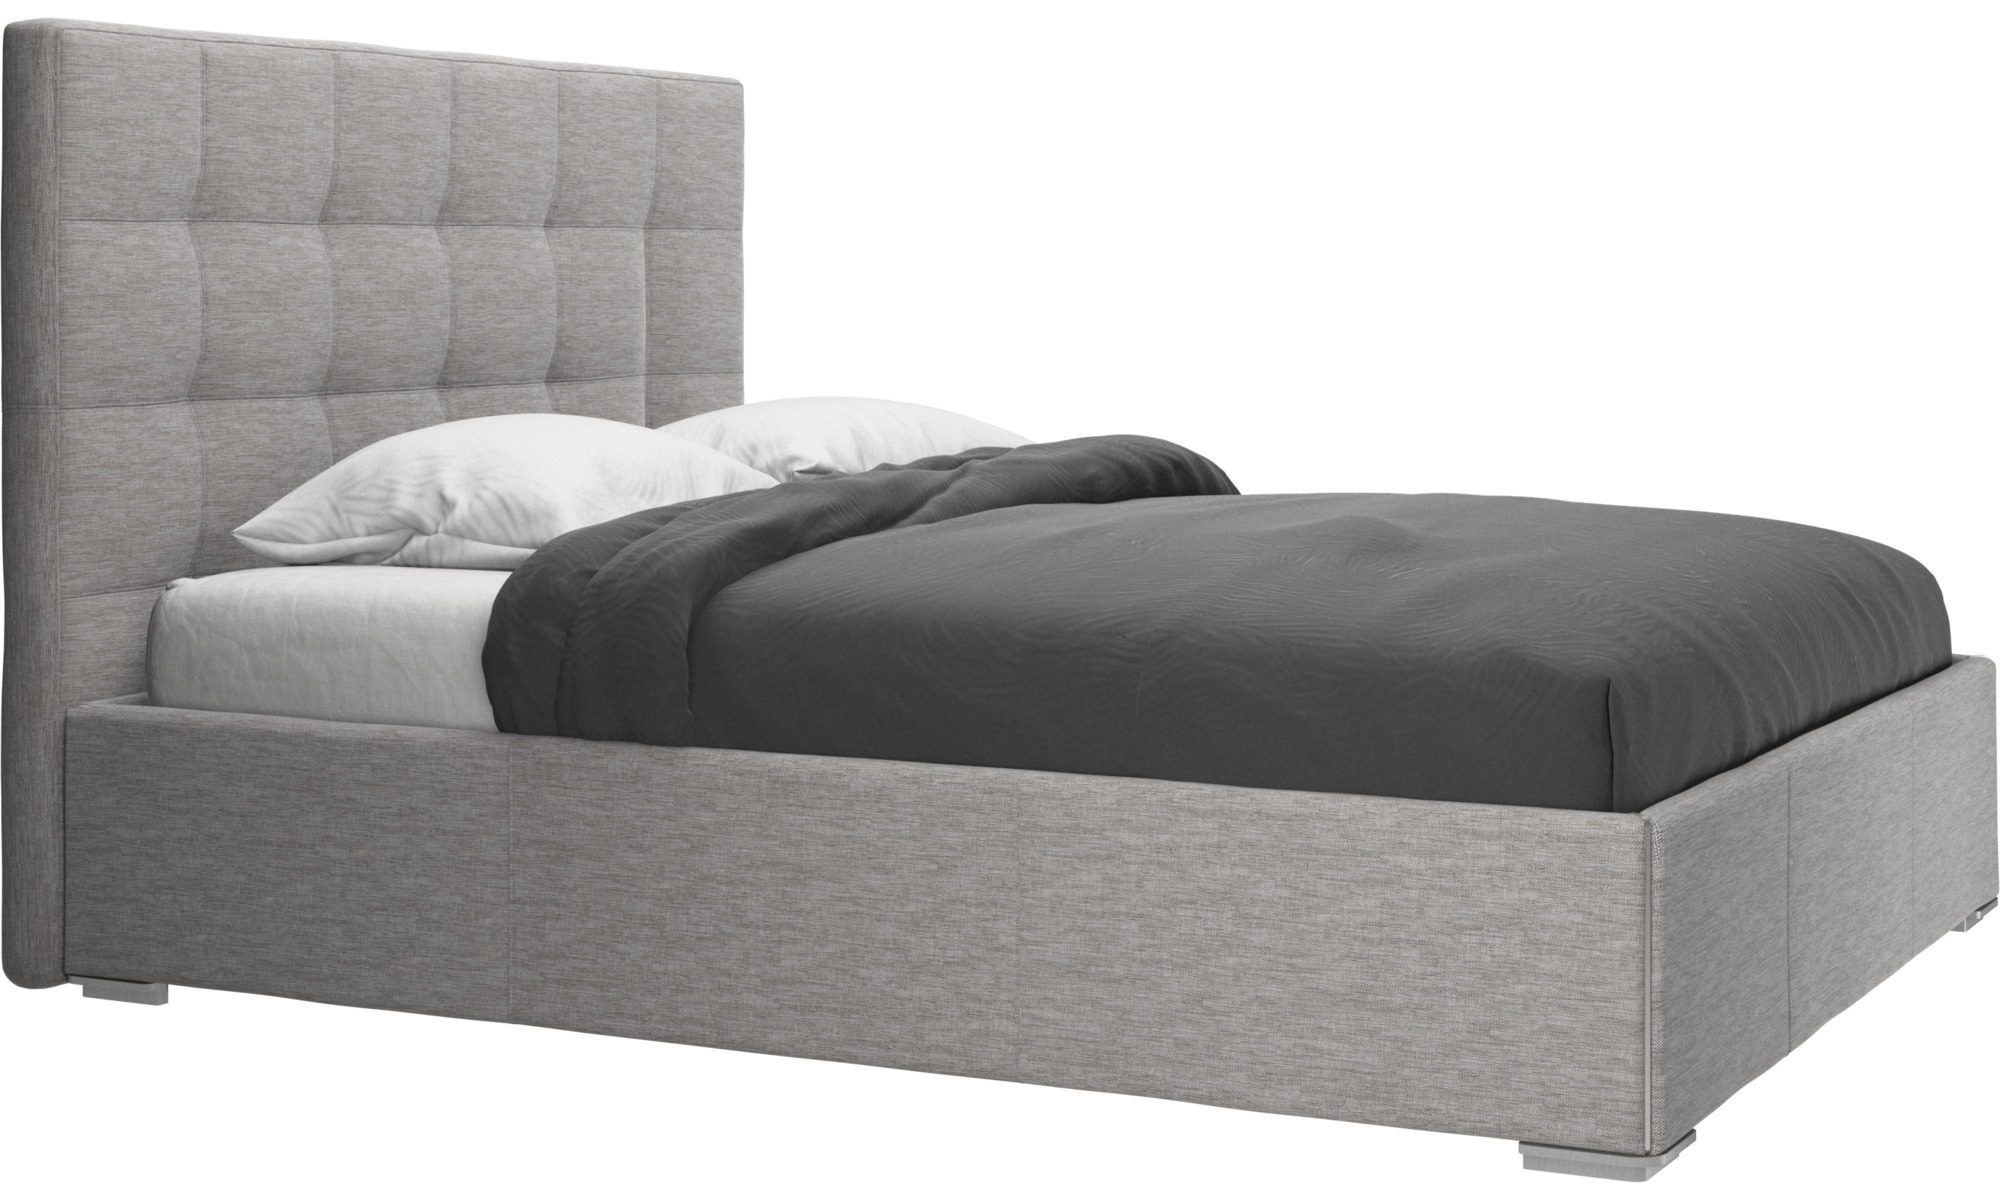 betten mezzo bett lattenrost und matratze gegen aufpreis boconcept. Black Bedroom Furniture Sets. Home Design Ideas